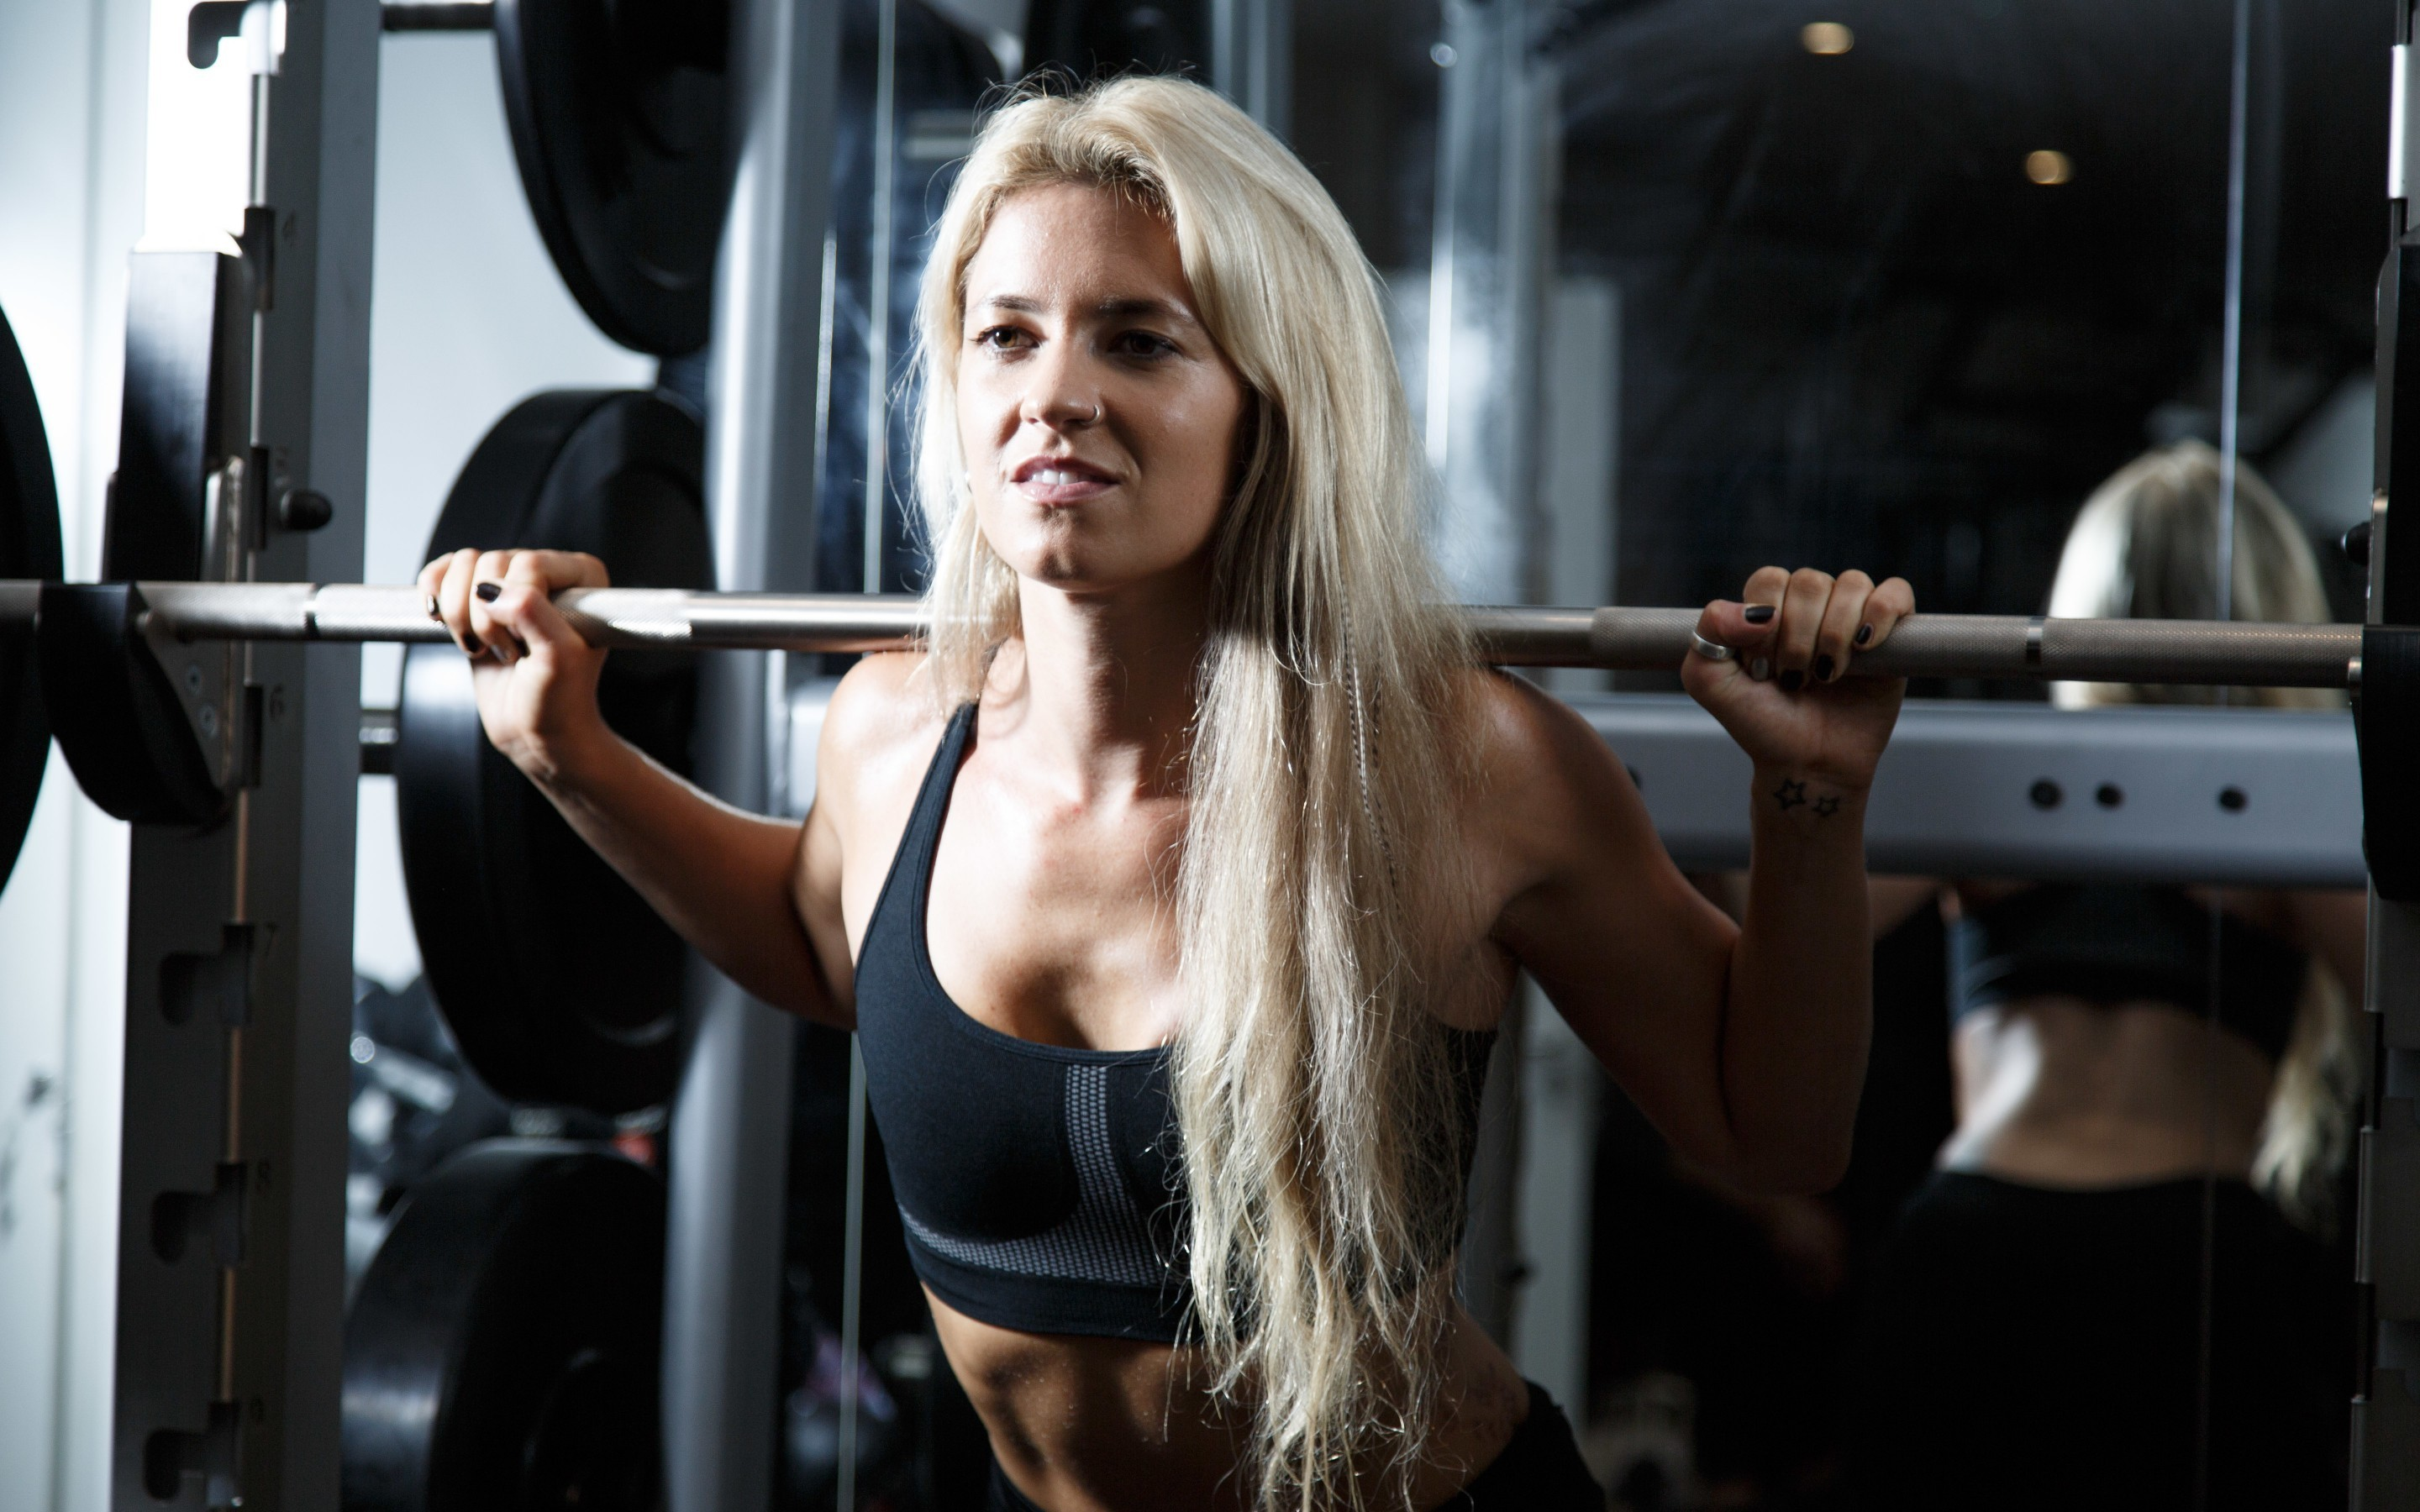 weight lifting wallpaper hd 63 images